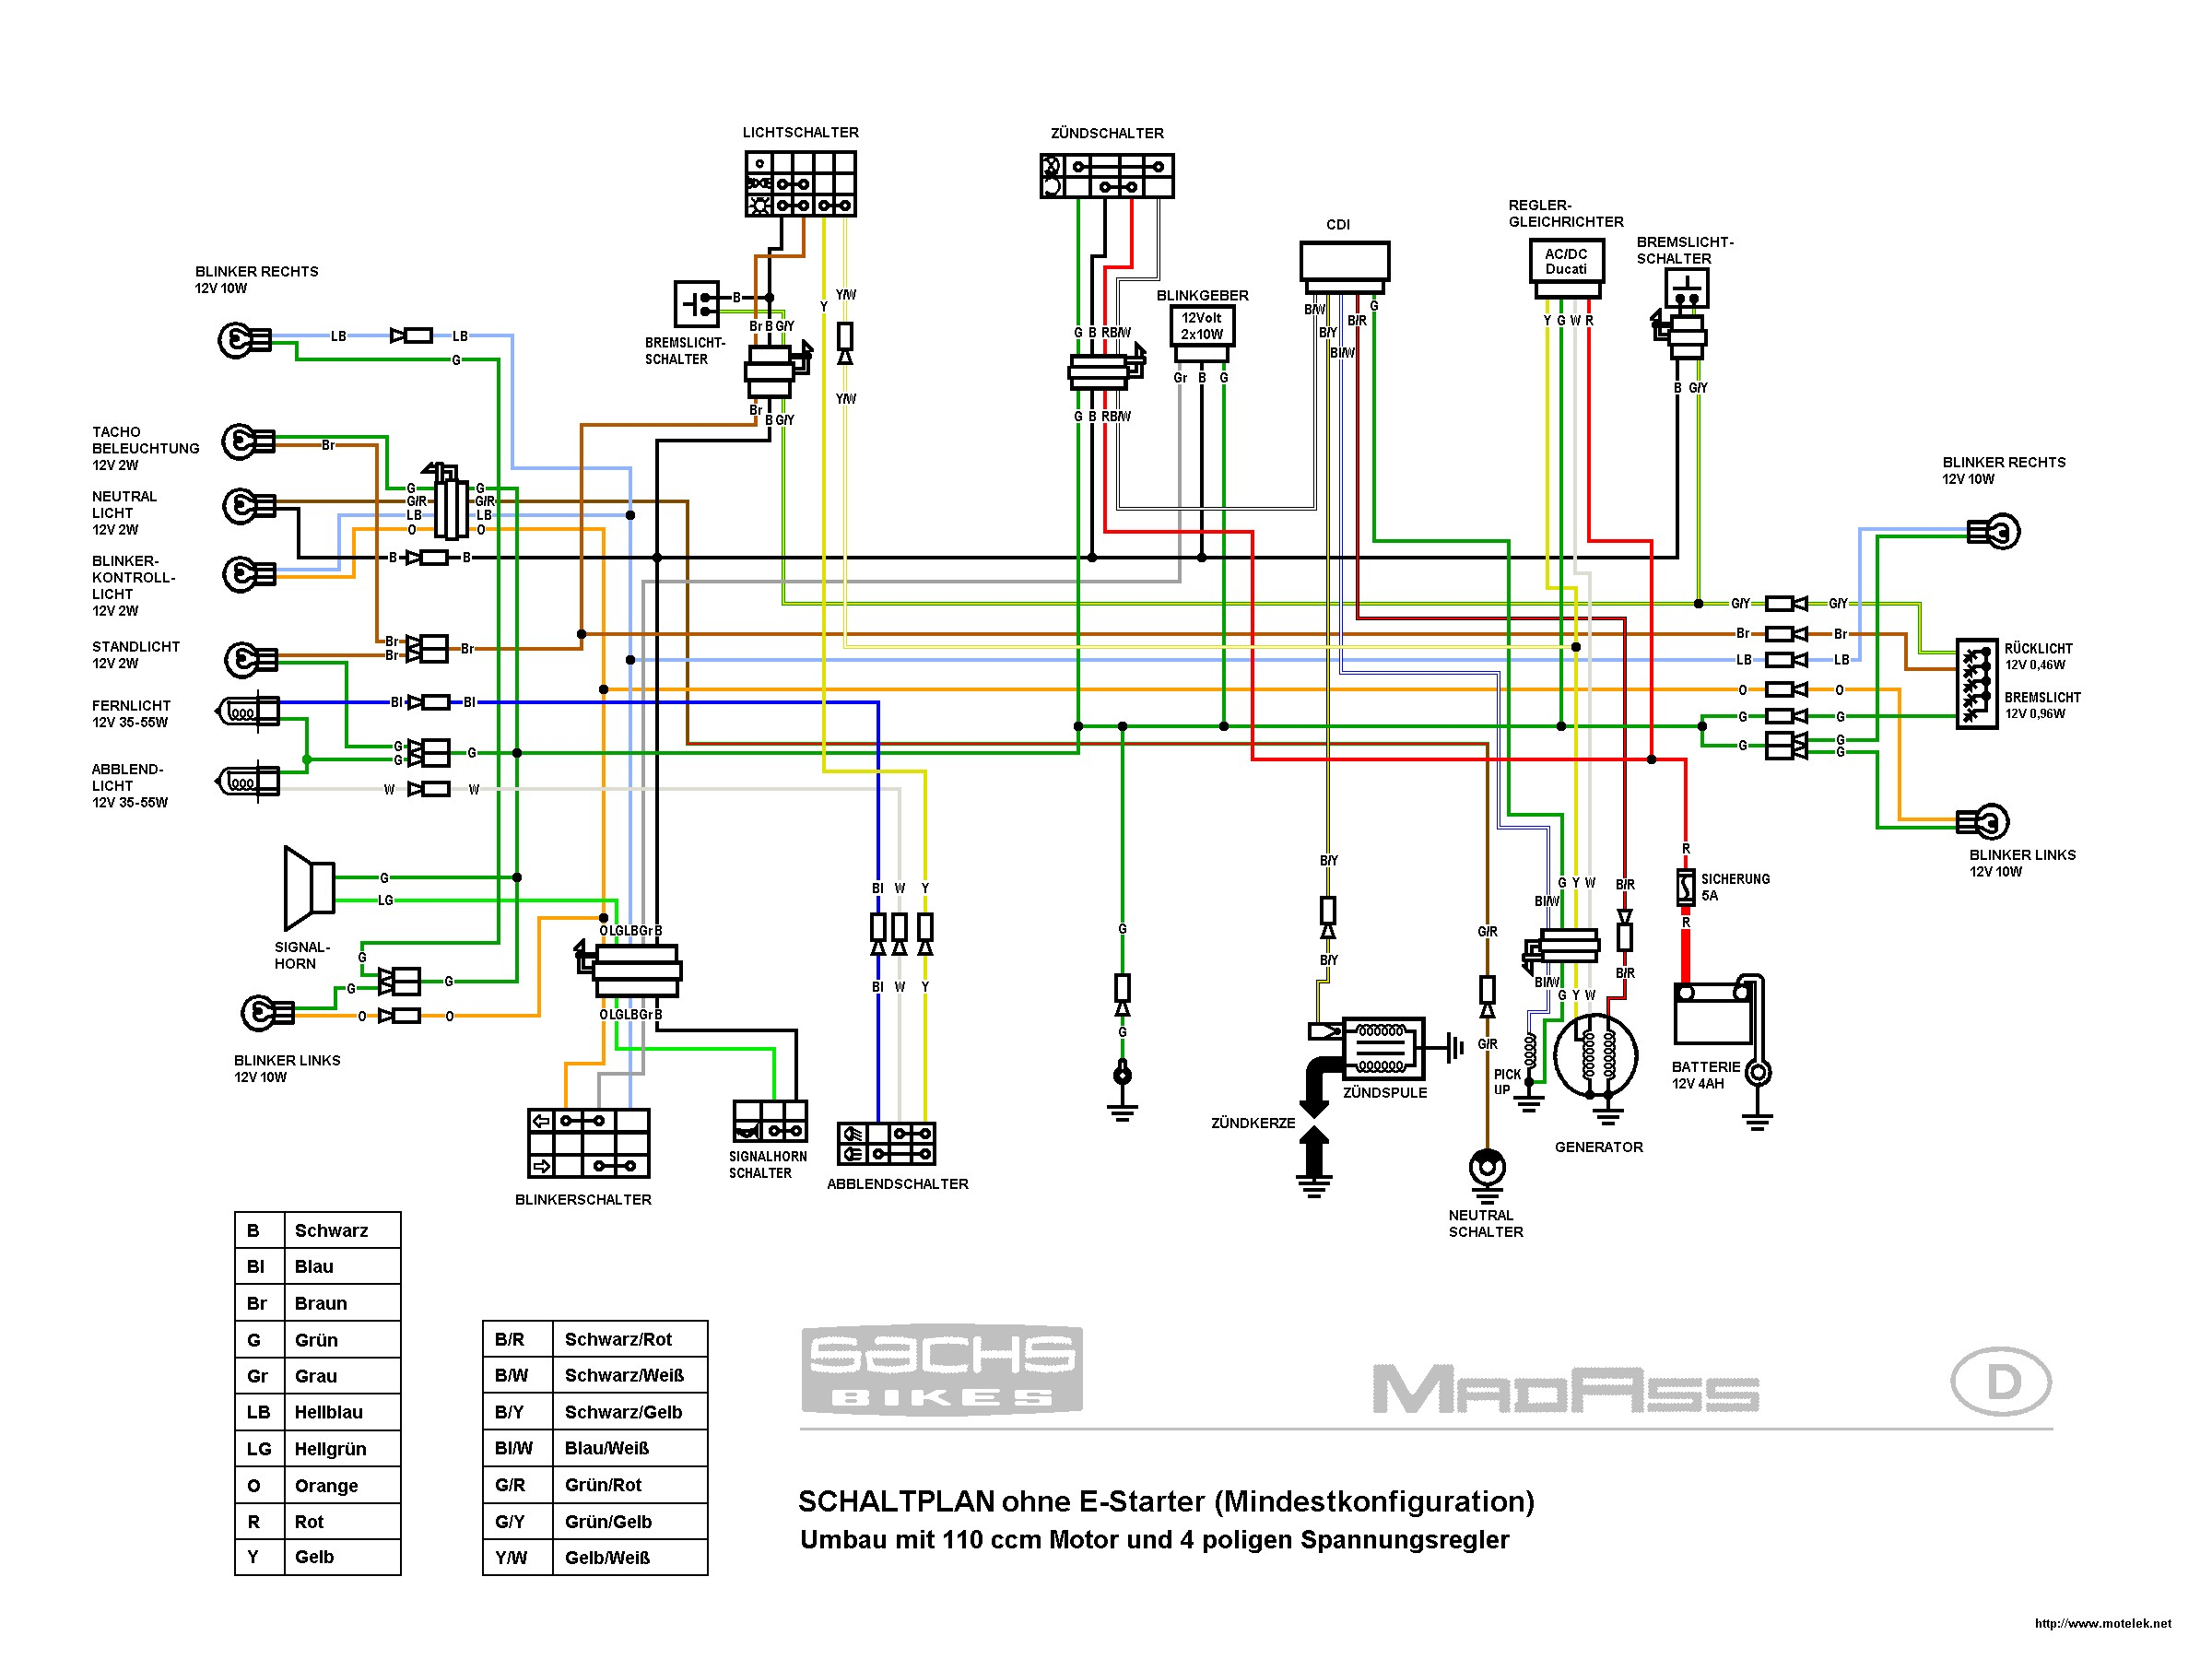 WRG-9159] Honda Motorcycle 125cc Wiring Diagram